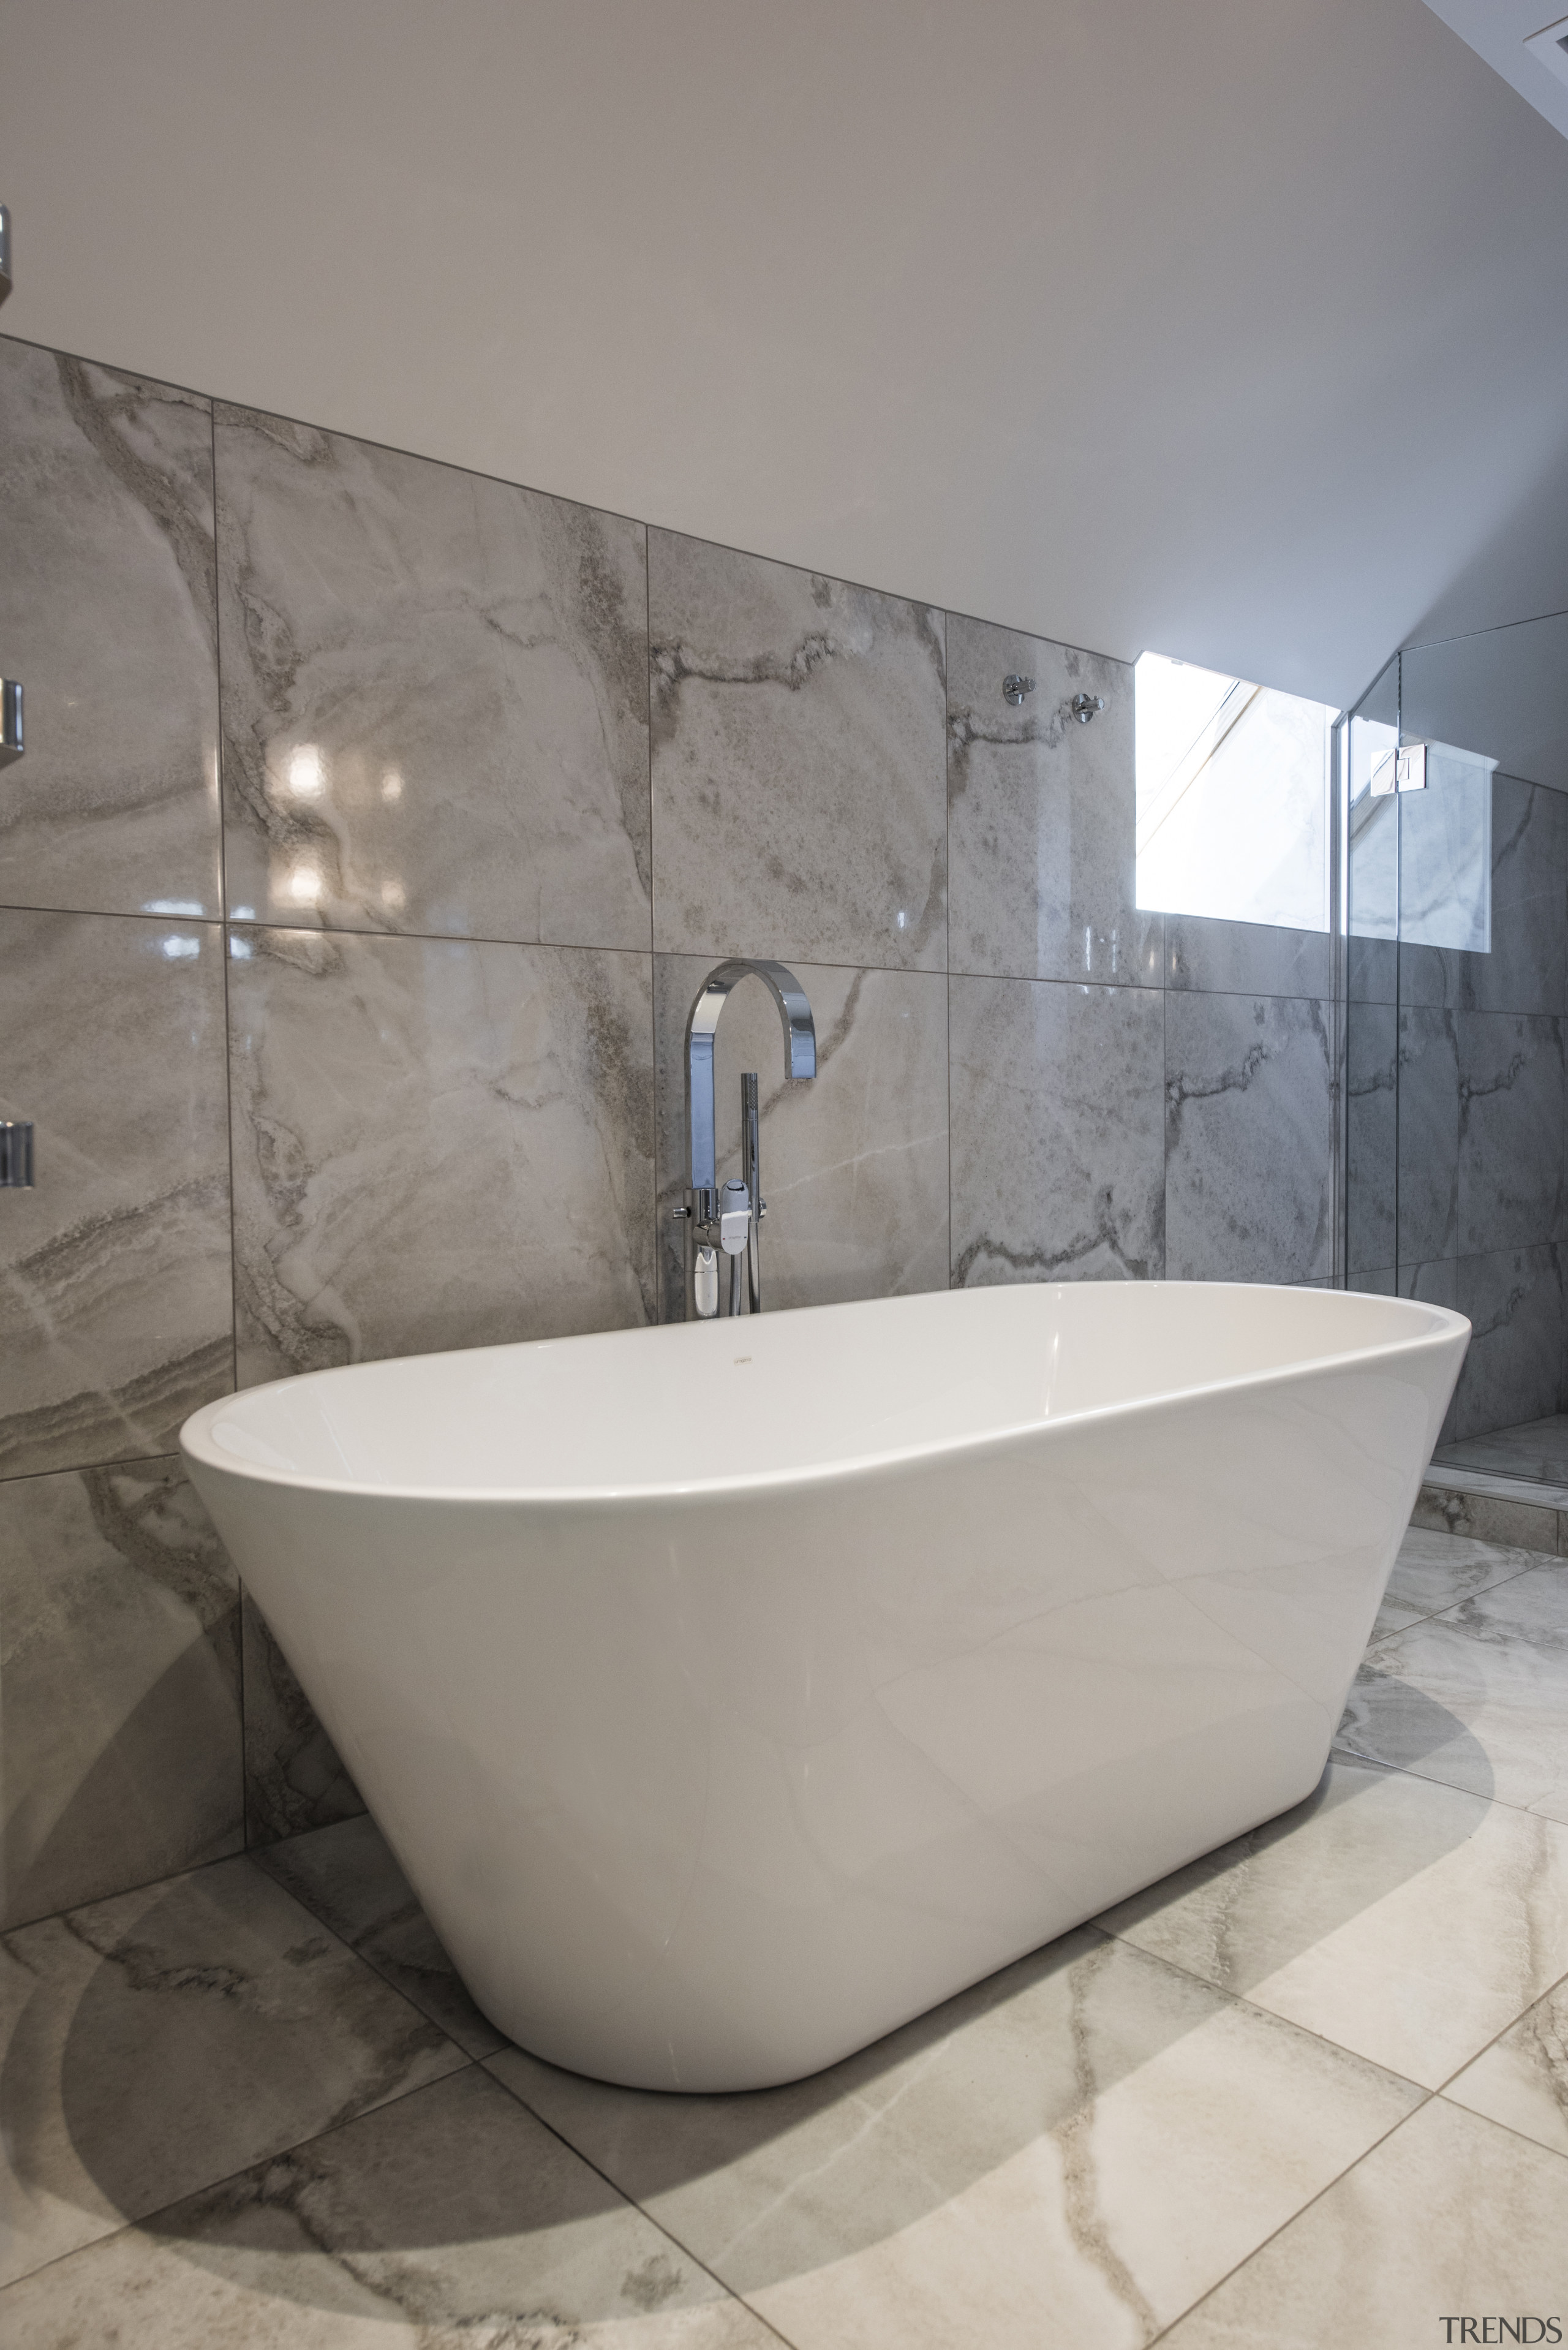 The bath was selected for its play on architecture, bathroom, bathtub, ceramic, floor, flooring, home, house, interior design, limestone, marble, material property, plumbing fixture, property, room, tap, tile, wall, gray